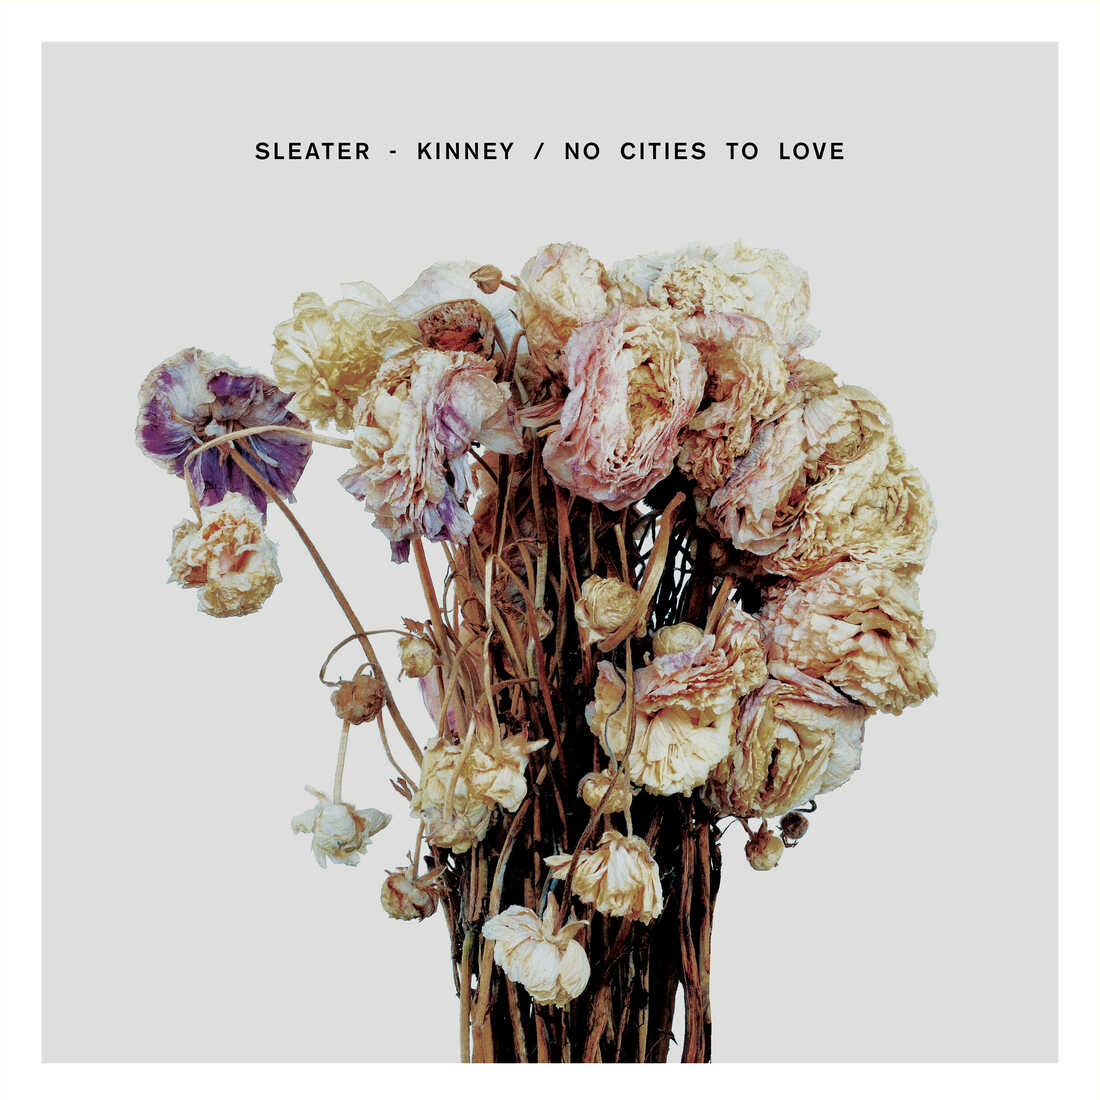 Sleater-Kinney's first album after the trio's eight-year hiatus, No Cities To Love, will be out January 20 on Sub Pop.